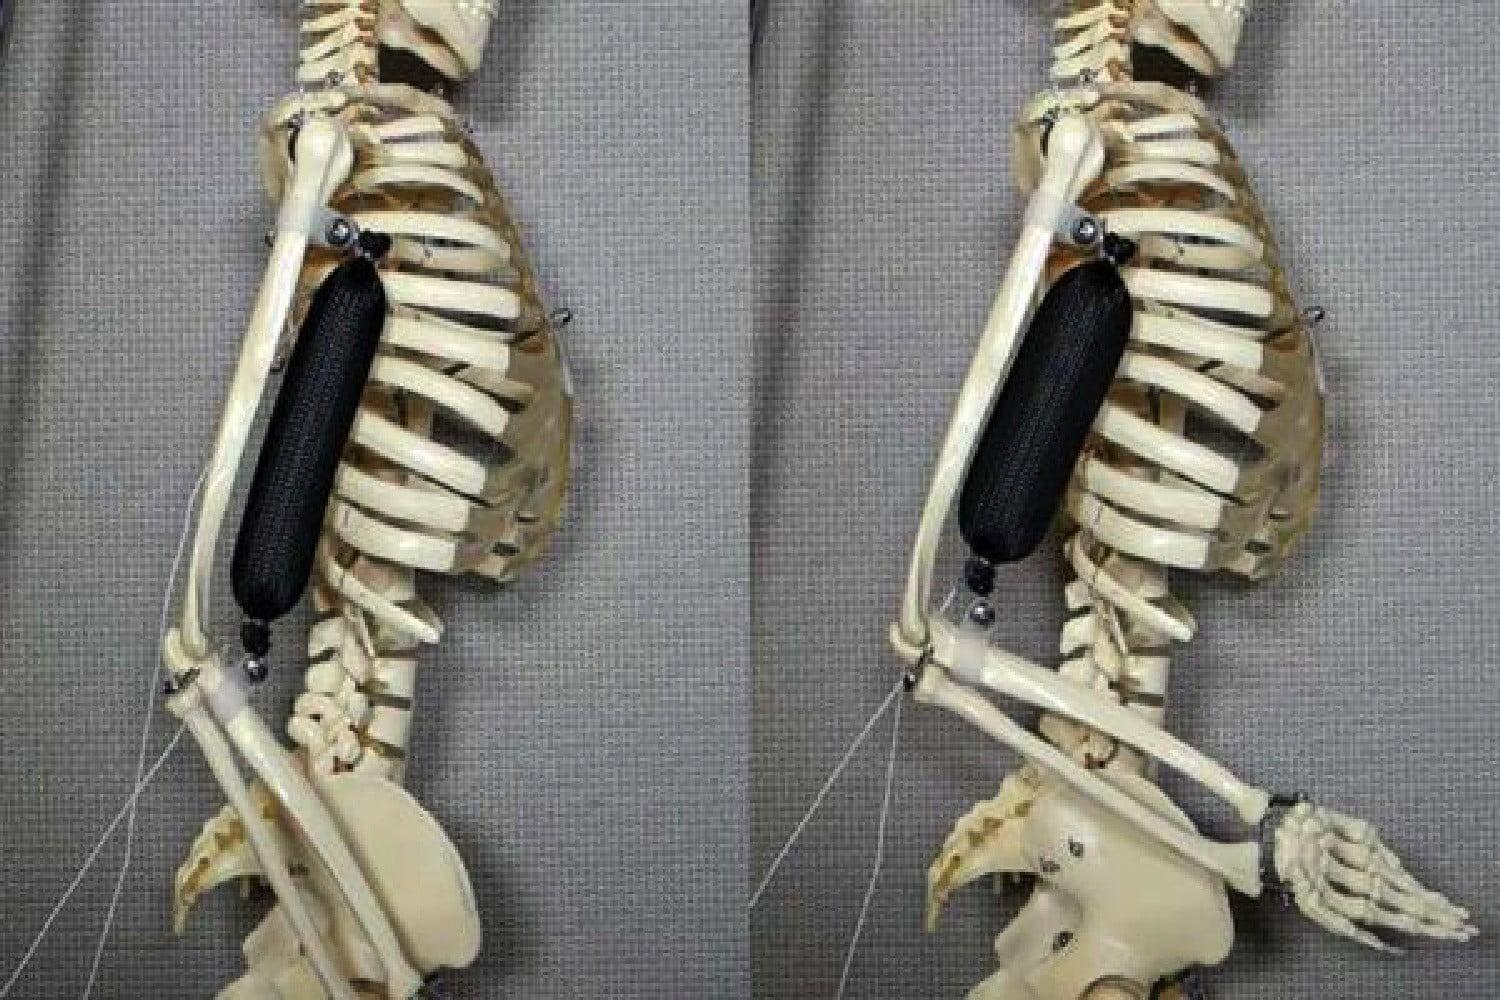 Newly developed artificial muscles can lift 1,000 times their own weight